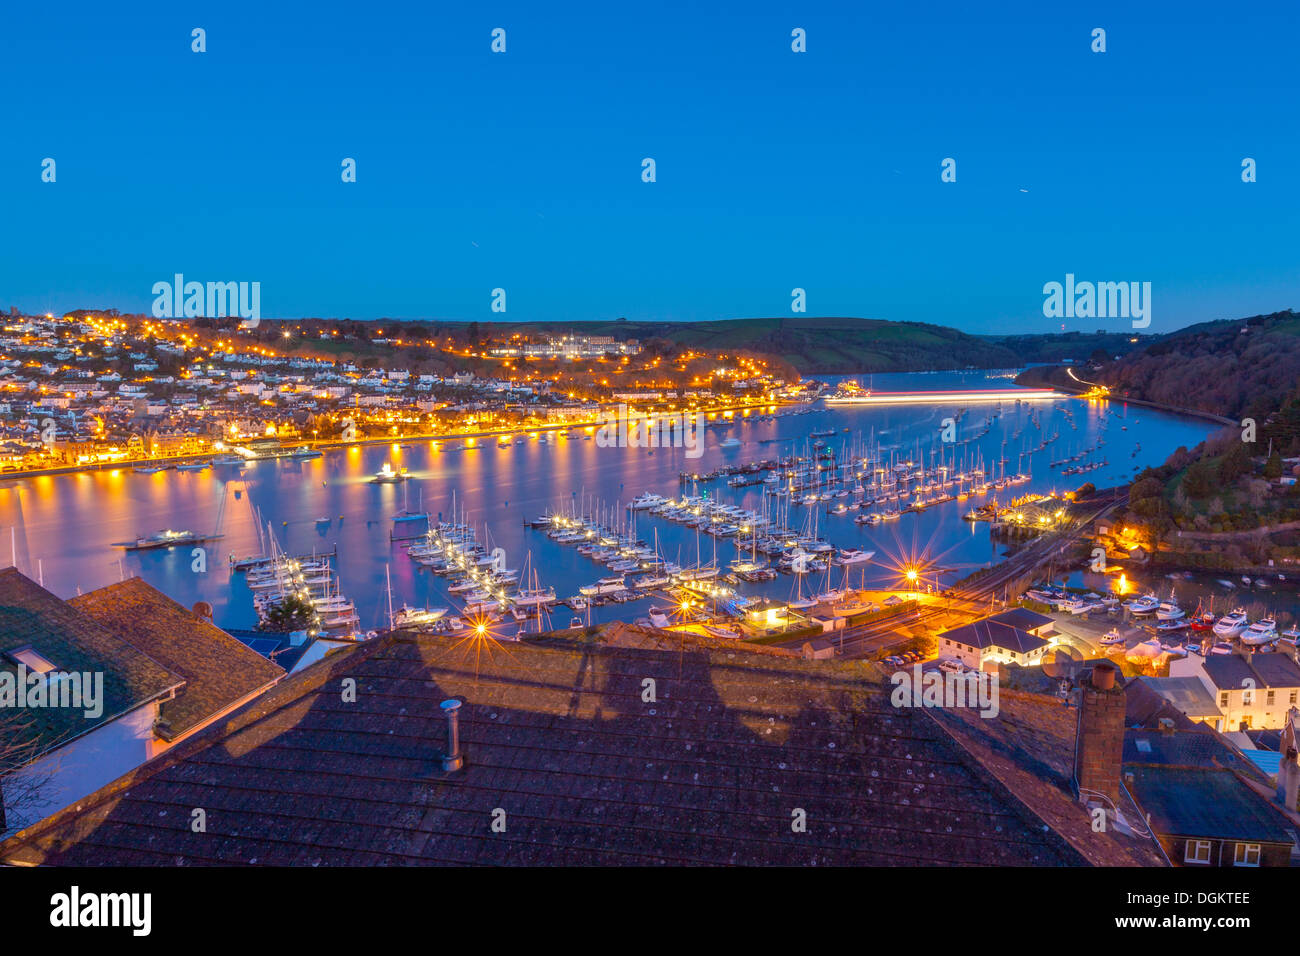 Boats moored on the river Dart with Dartmouth in the background. - Stock Image